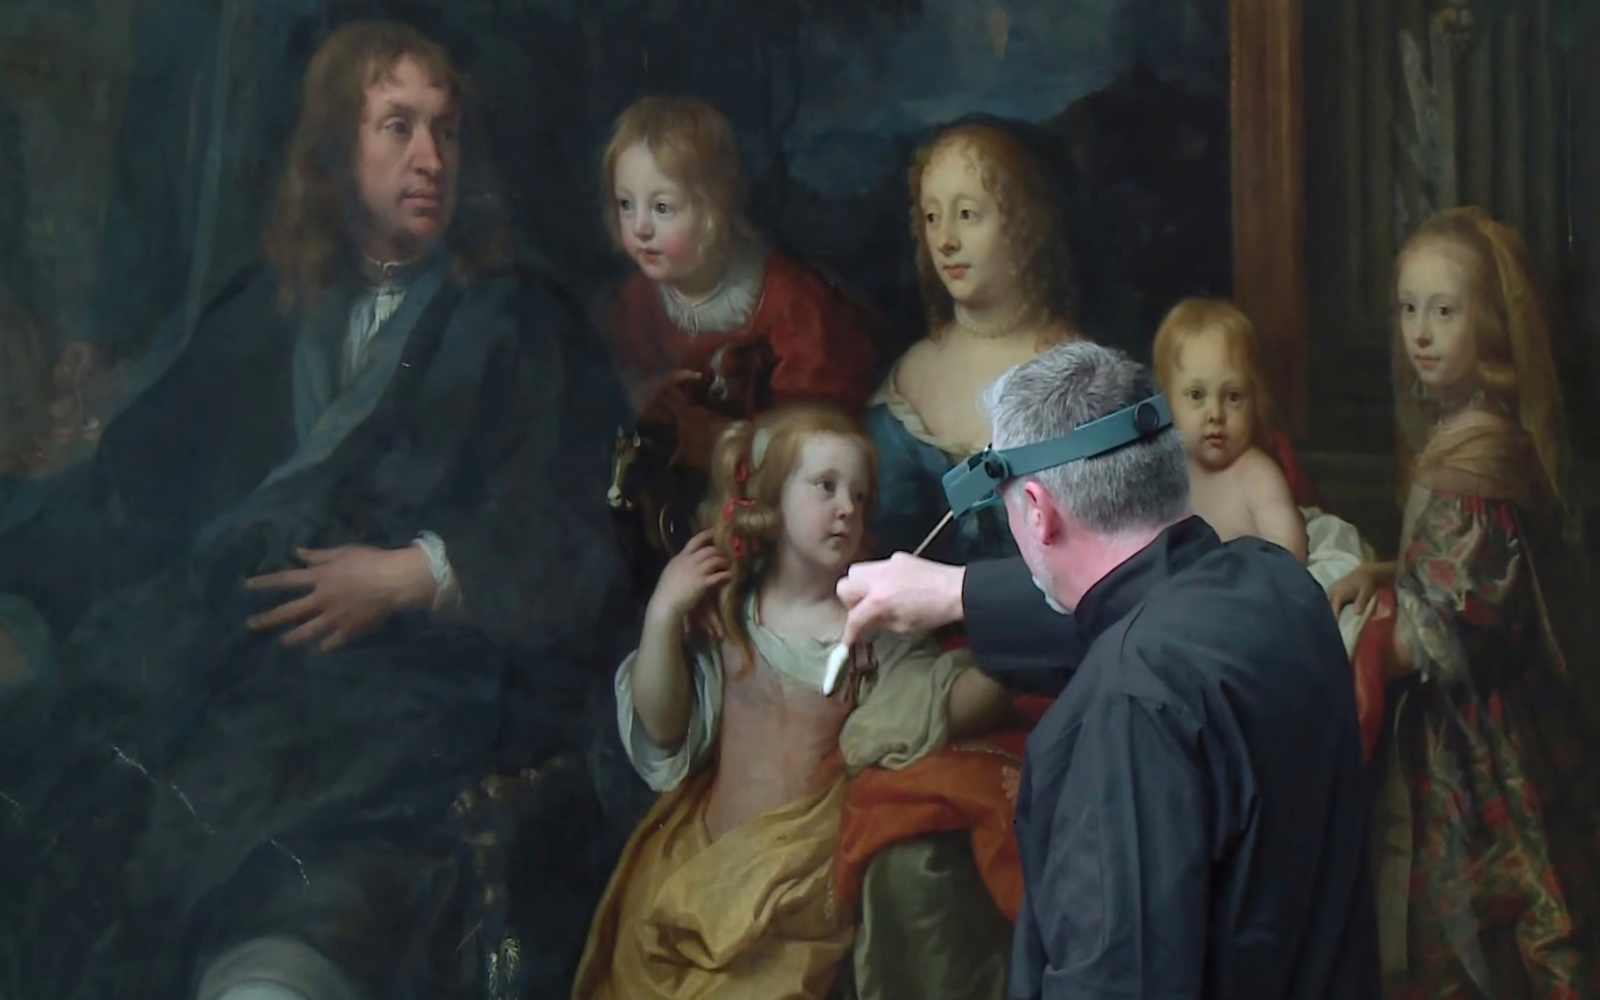 Met Painting Restoration: Charles Le Brun's A Portrait of Everhard Jabach and Family